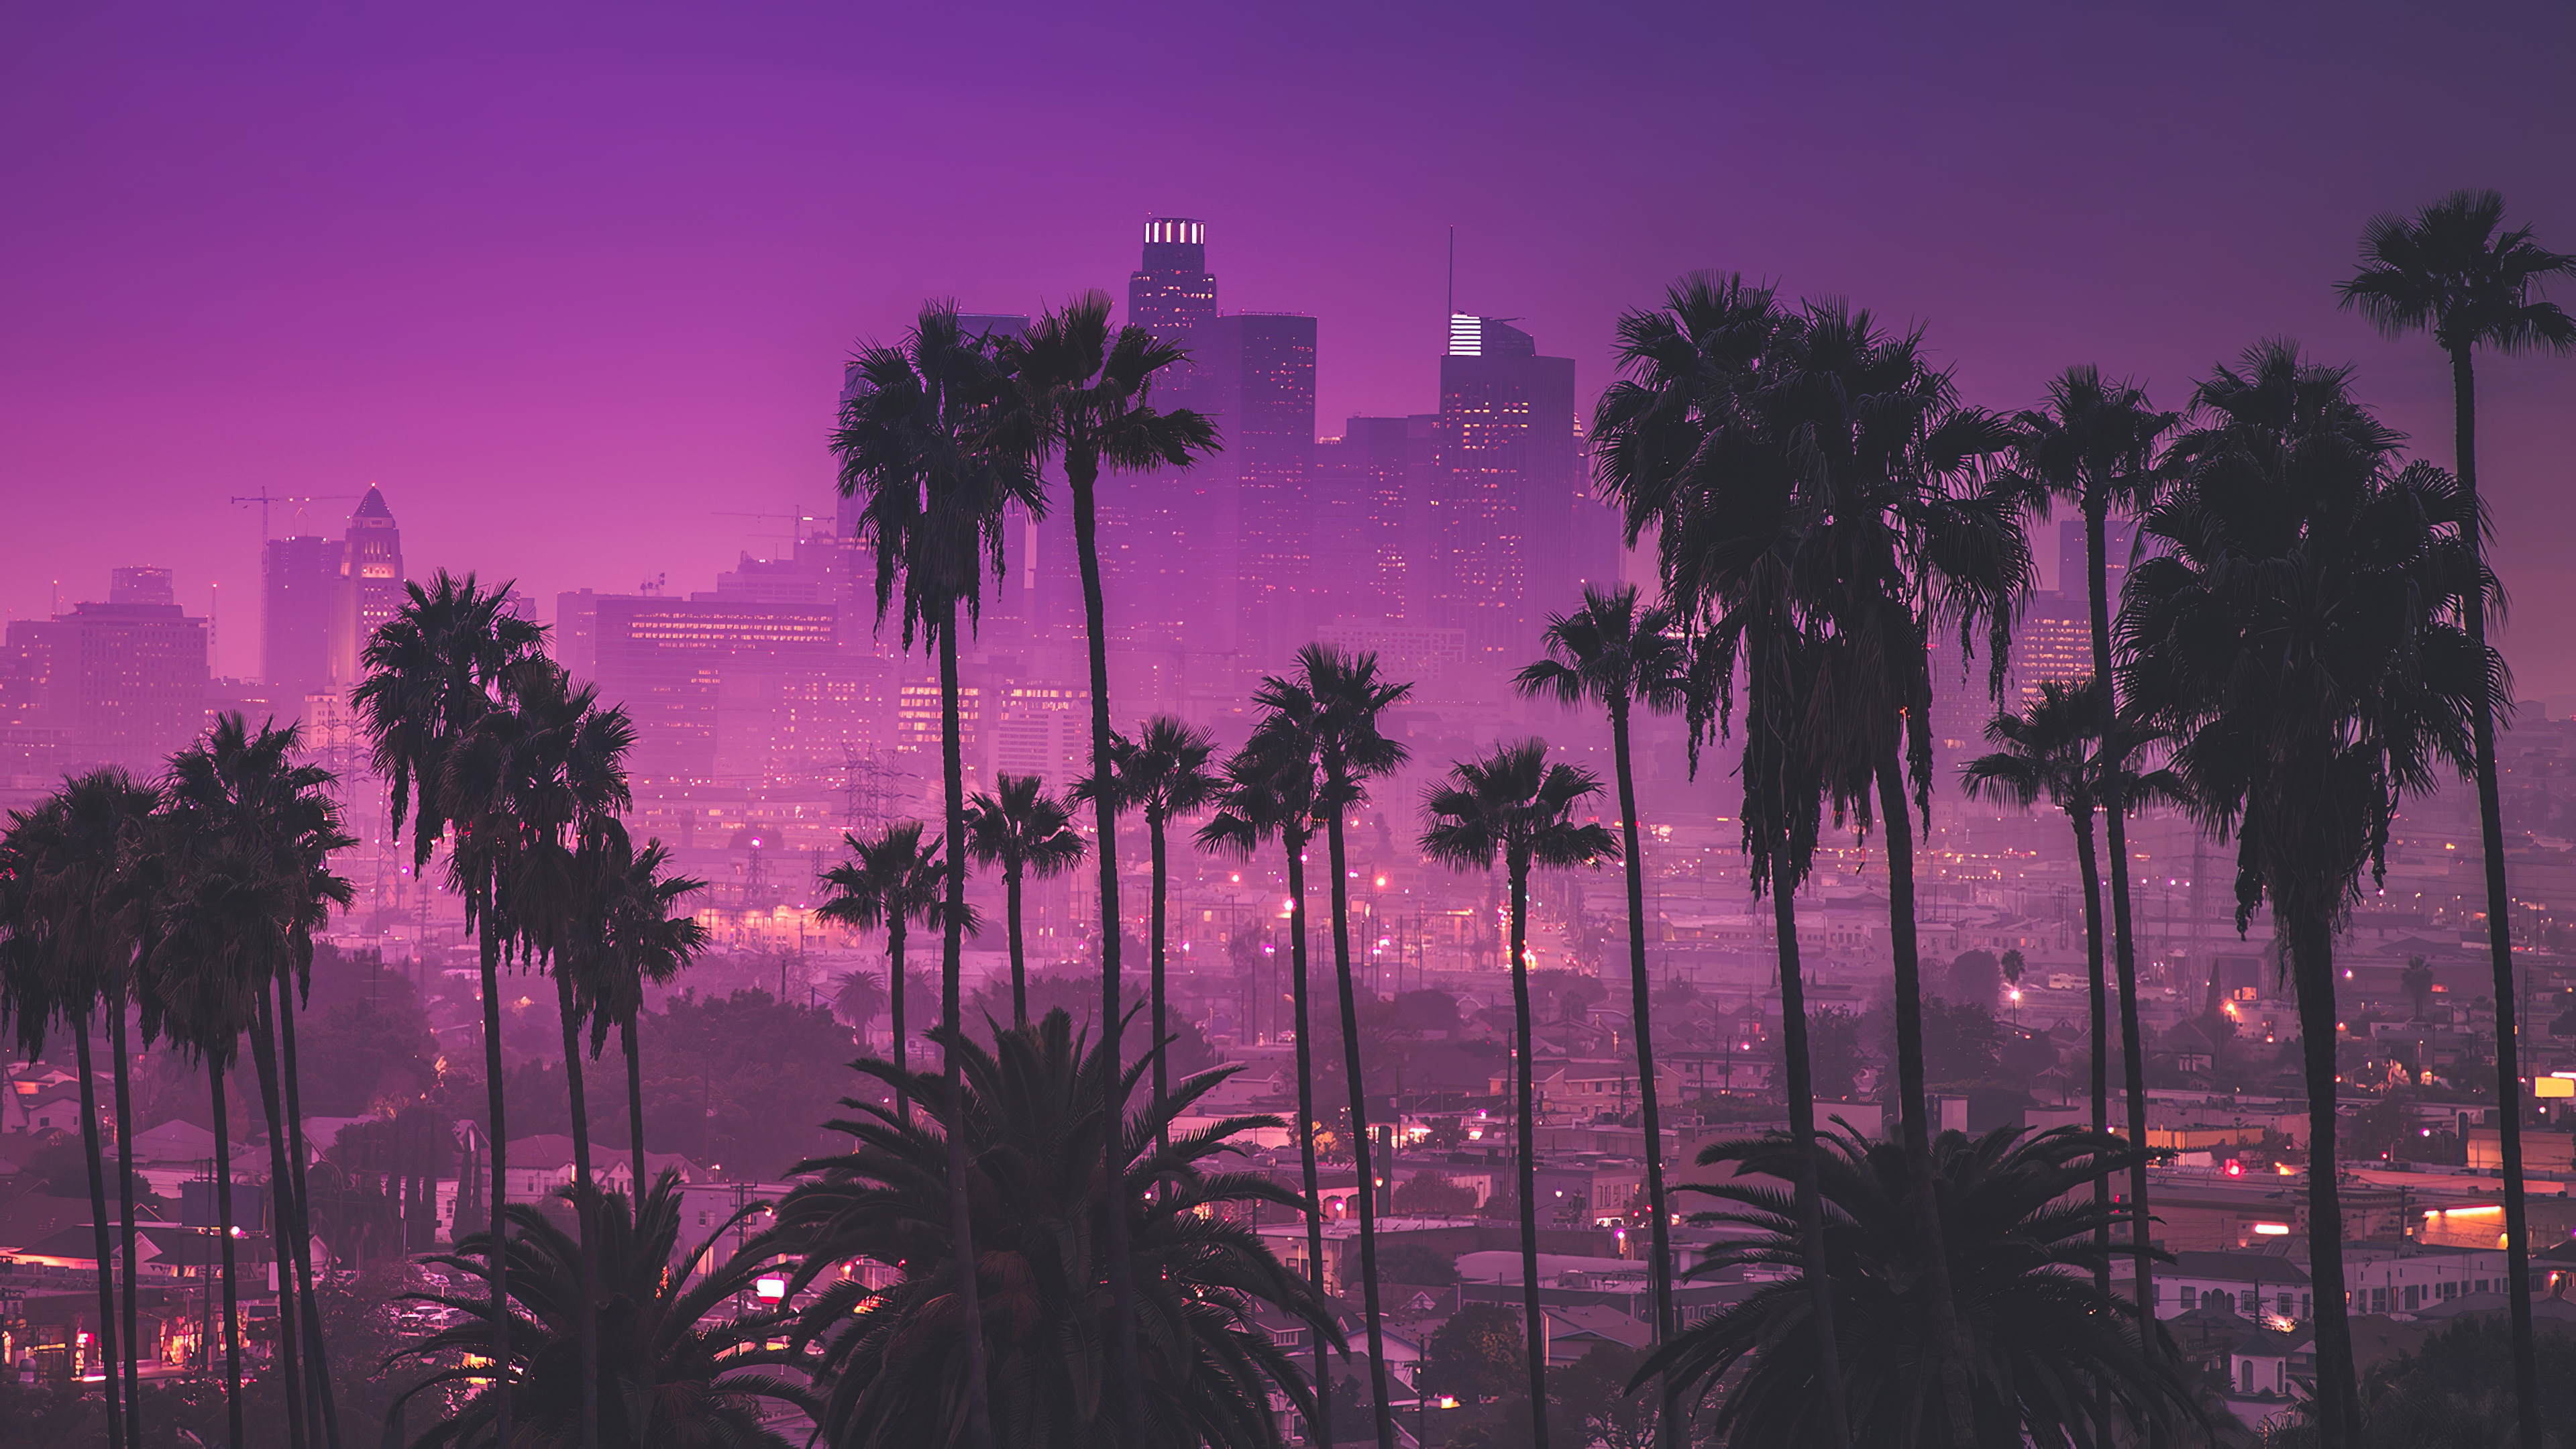 Palm Trees Against Purple Nightlights Los Angeles California 4k Ultra Hd Wallpaper Background Image 3840x2160 Id 1070350 Wallpaper Abyss